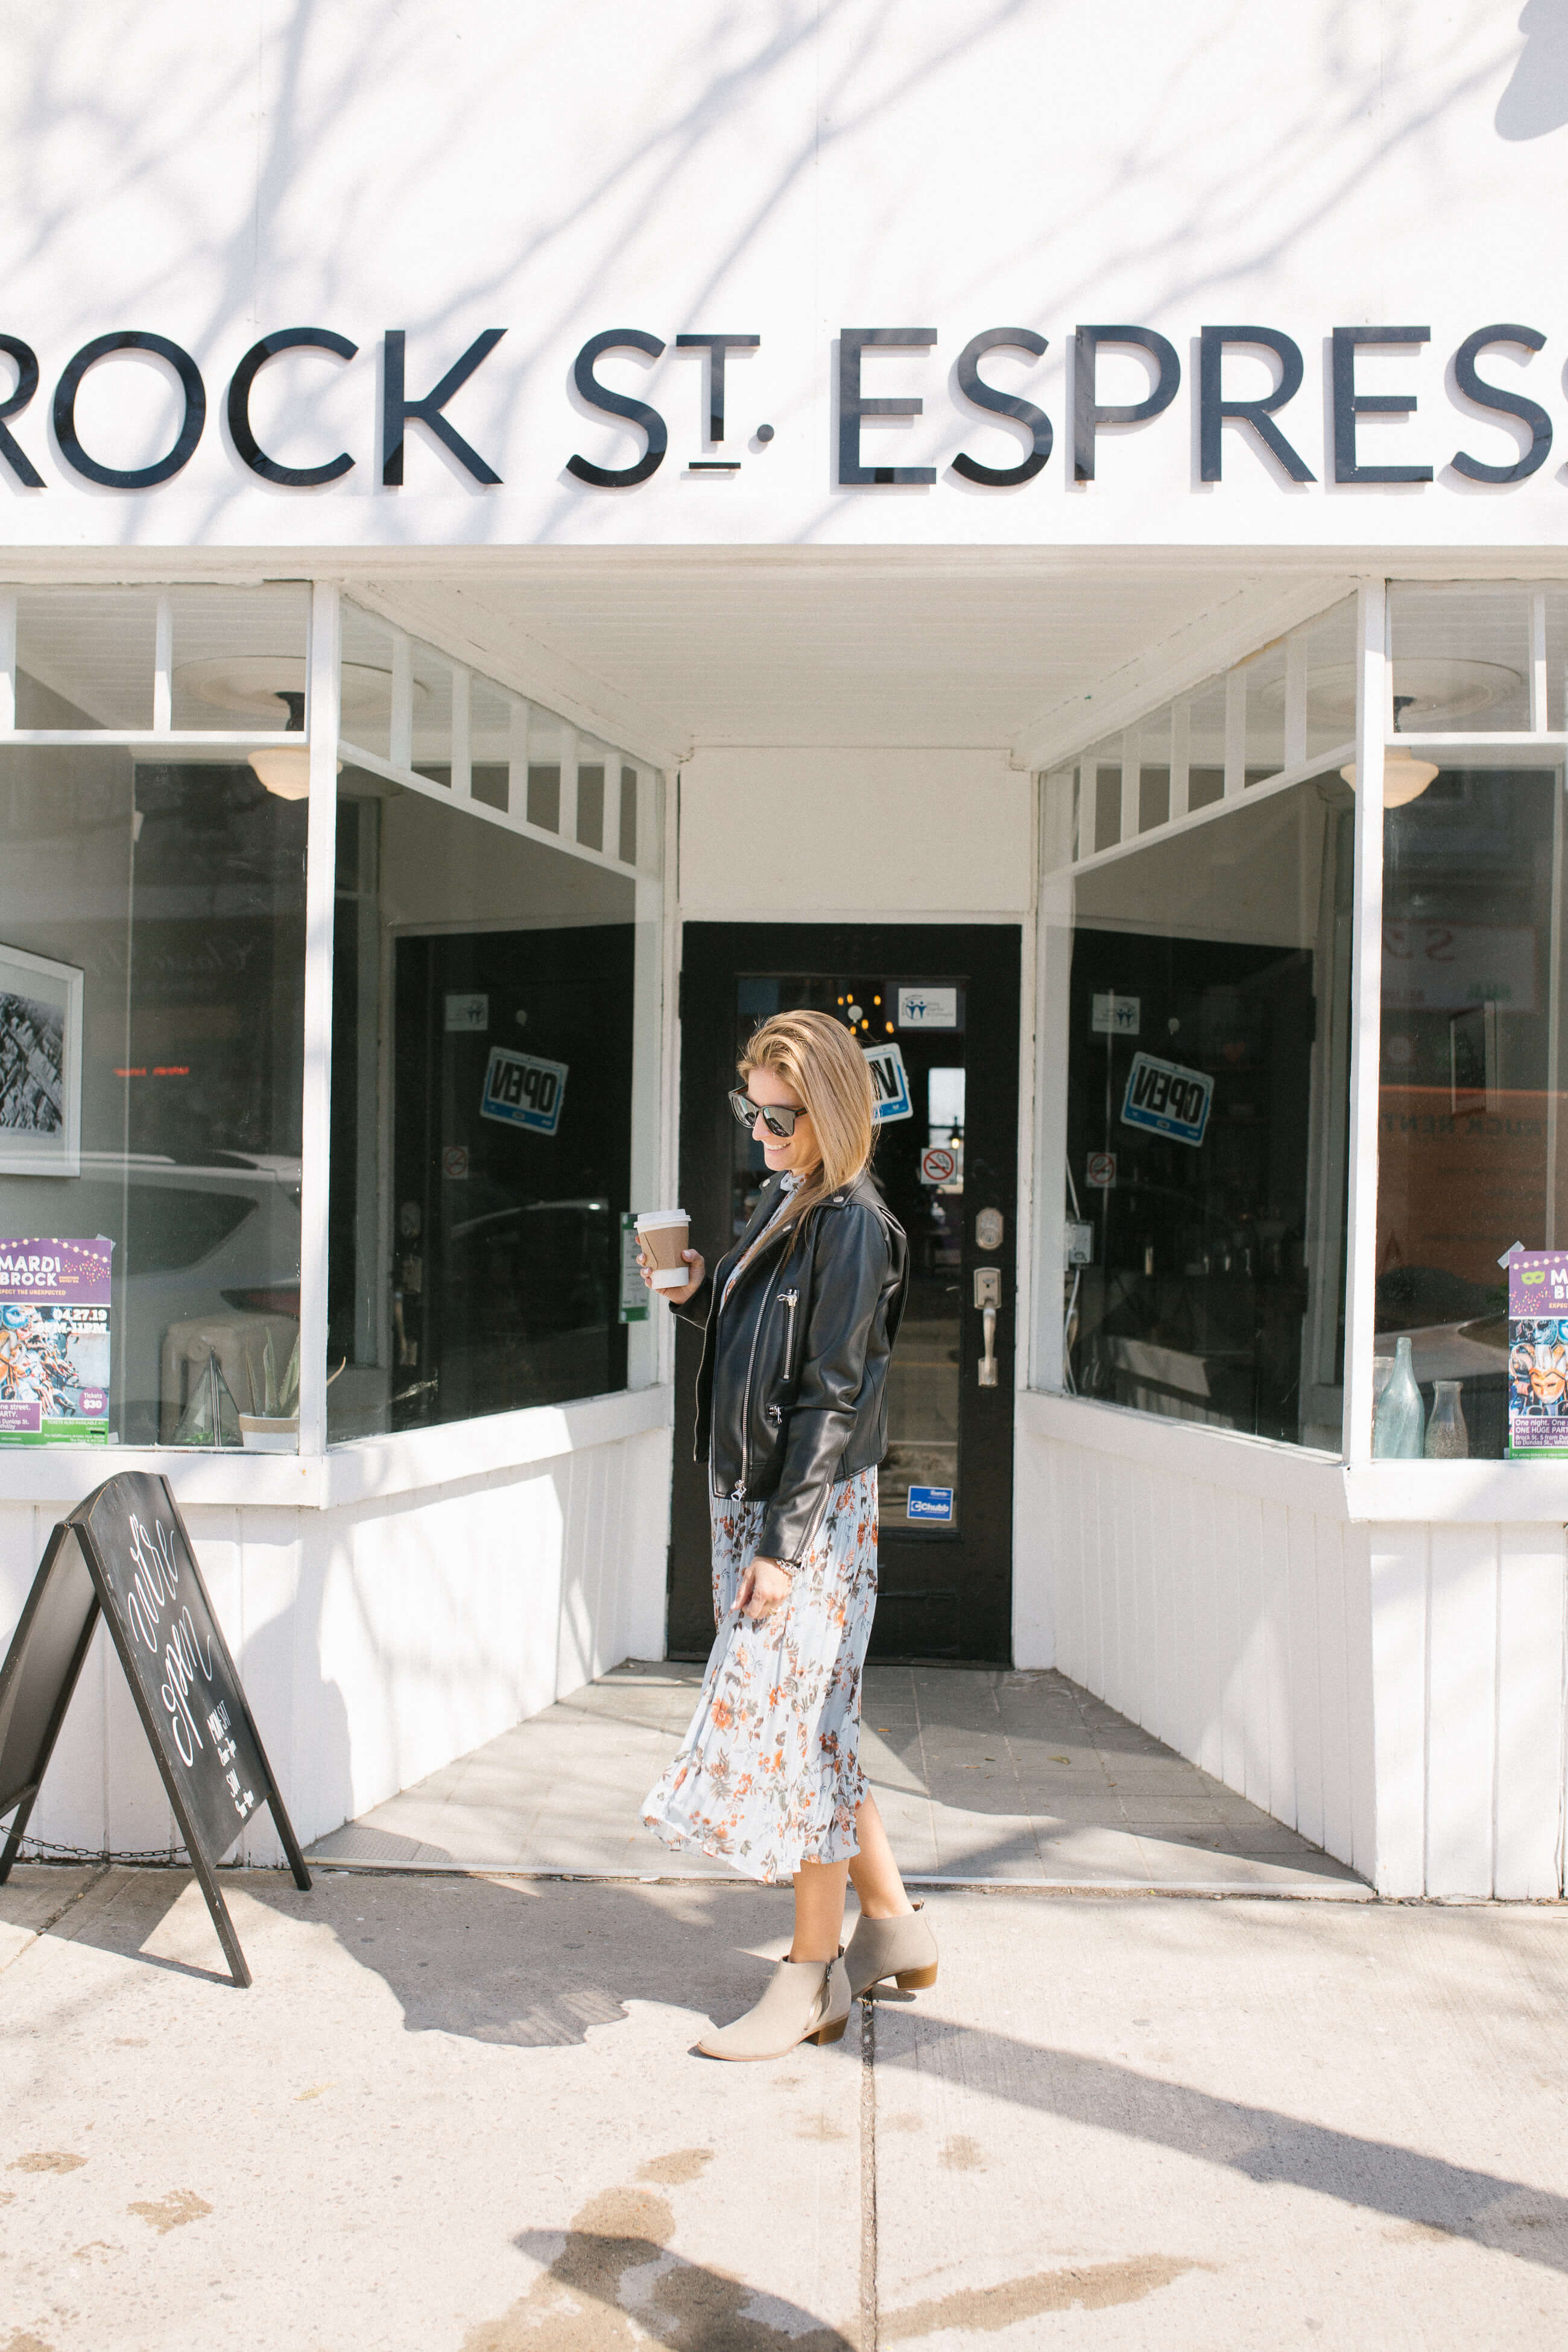 Floral maxi dress with a leather jacket; gucci sunglasses; Brock Street Espresso; mandy furnis sparkleshinylove; whitby blogger